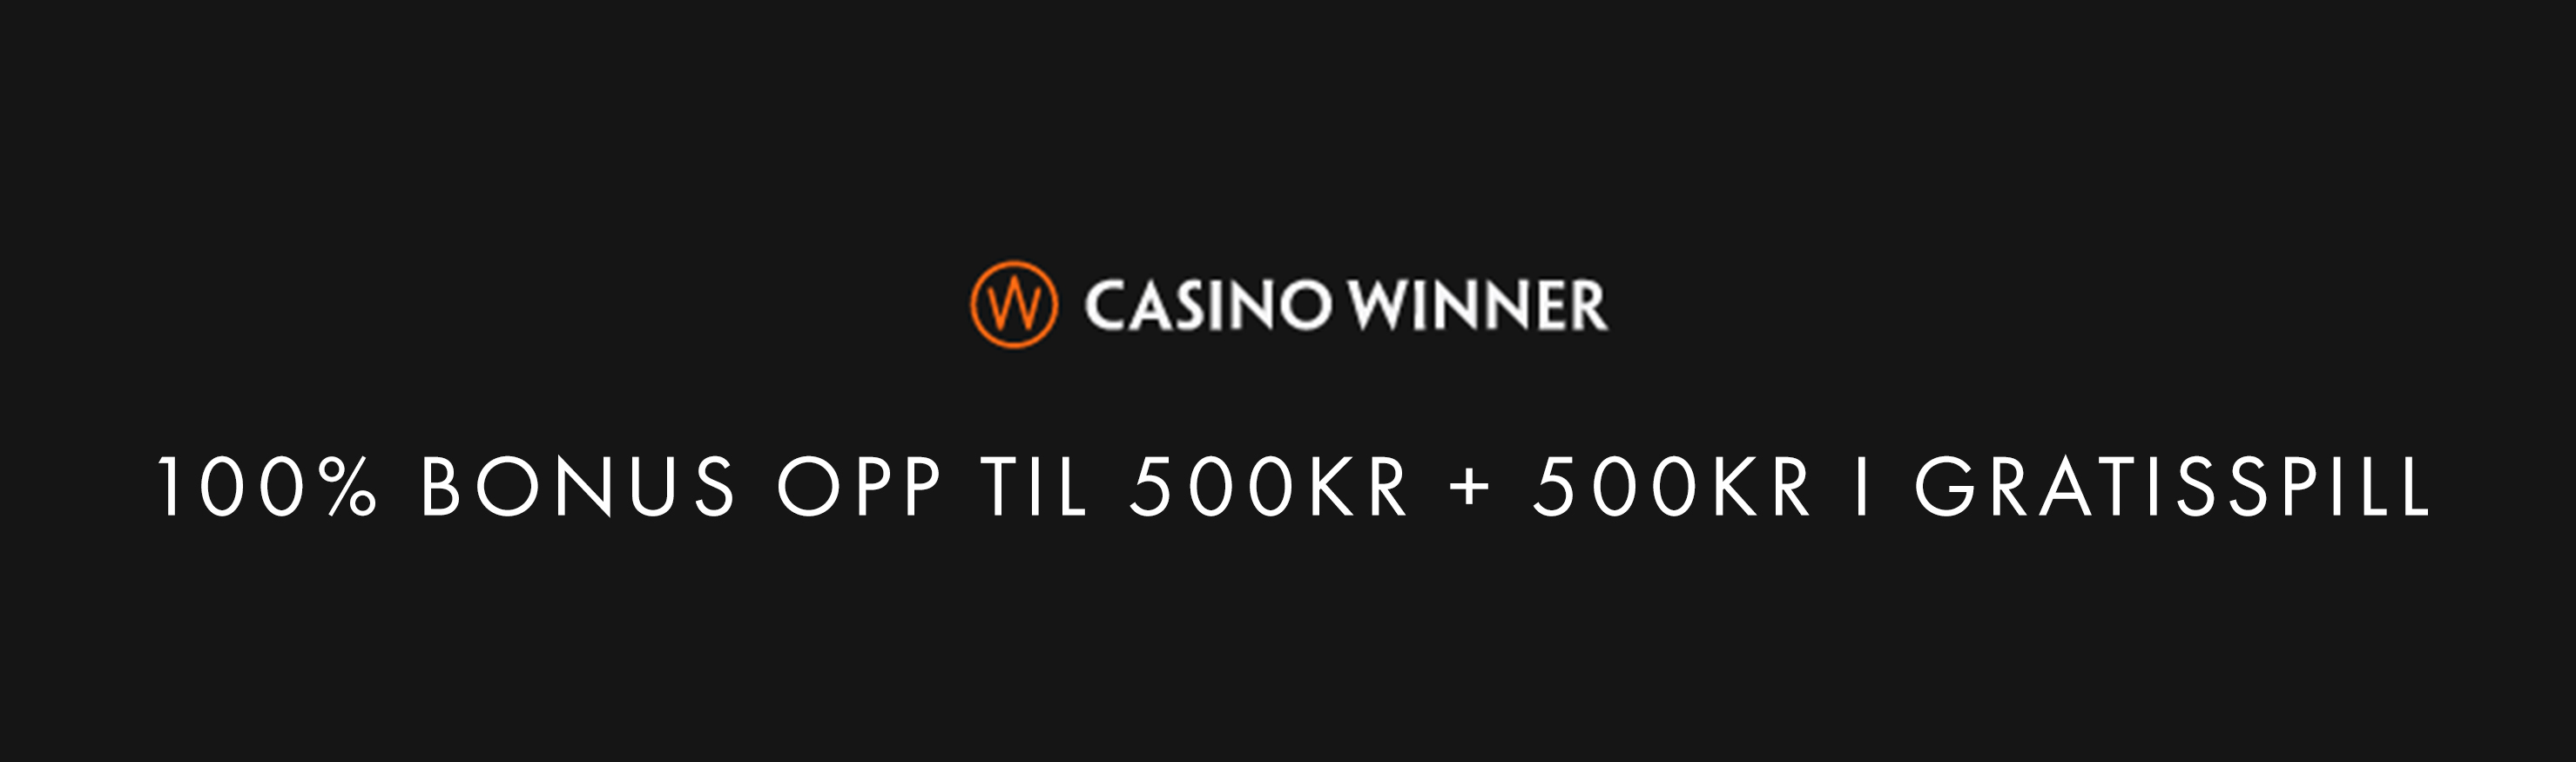 Casino Winner oddsbonus